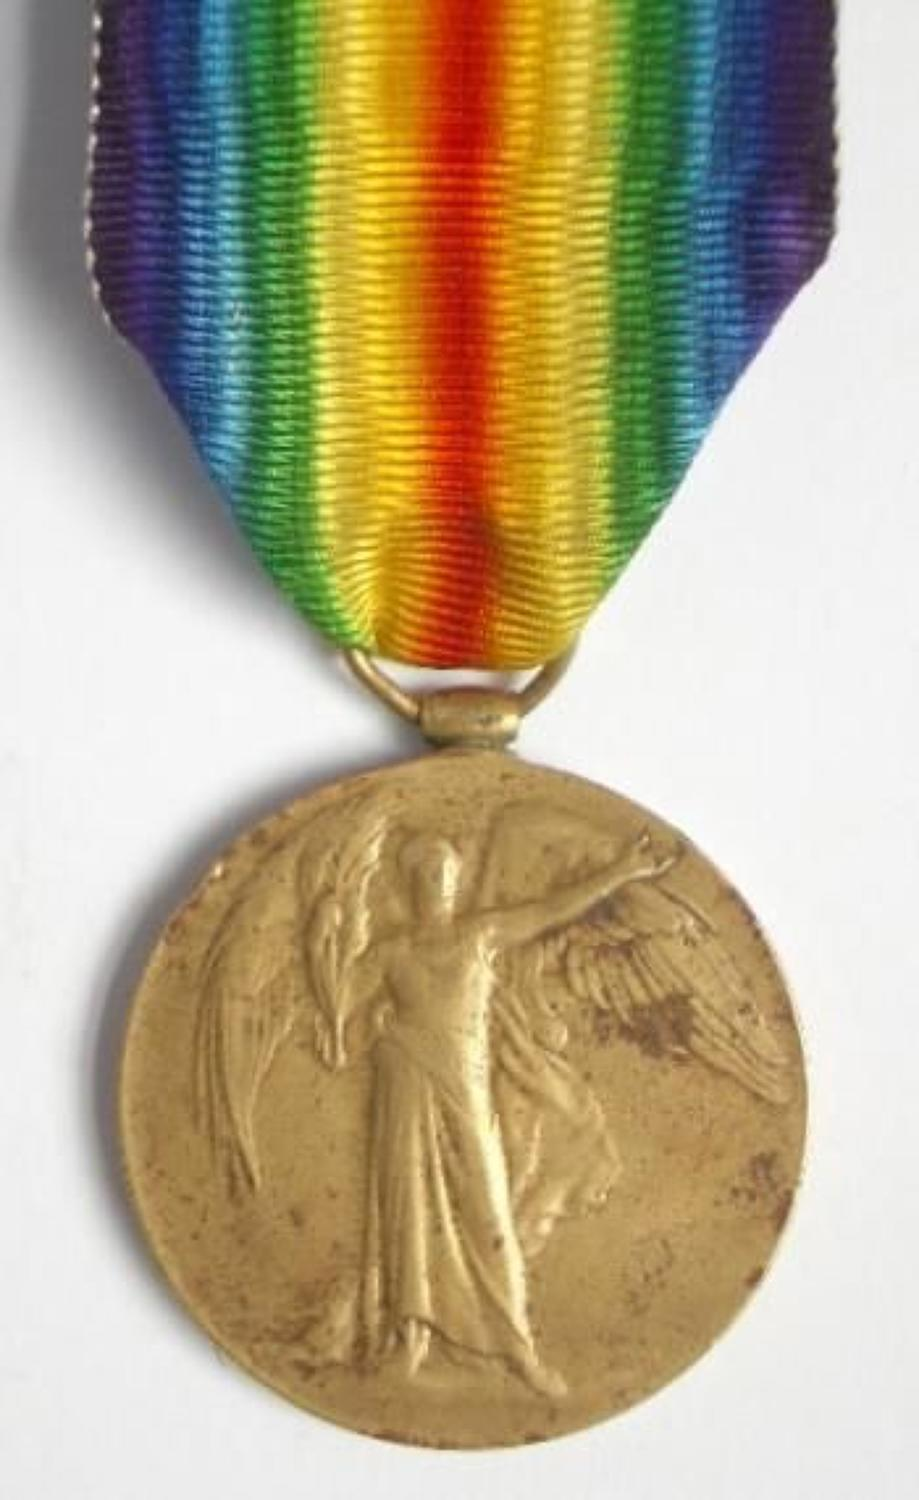 WW1 Manchester Regiment Victory Medal.